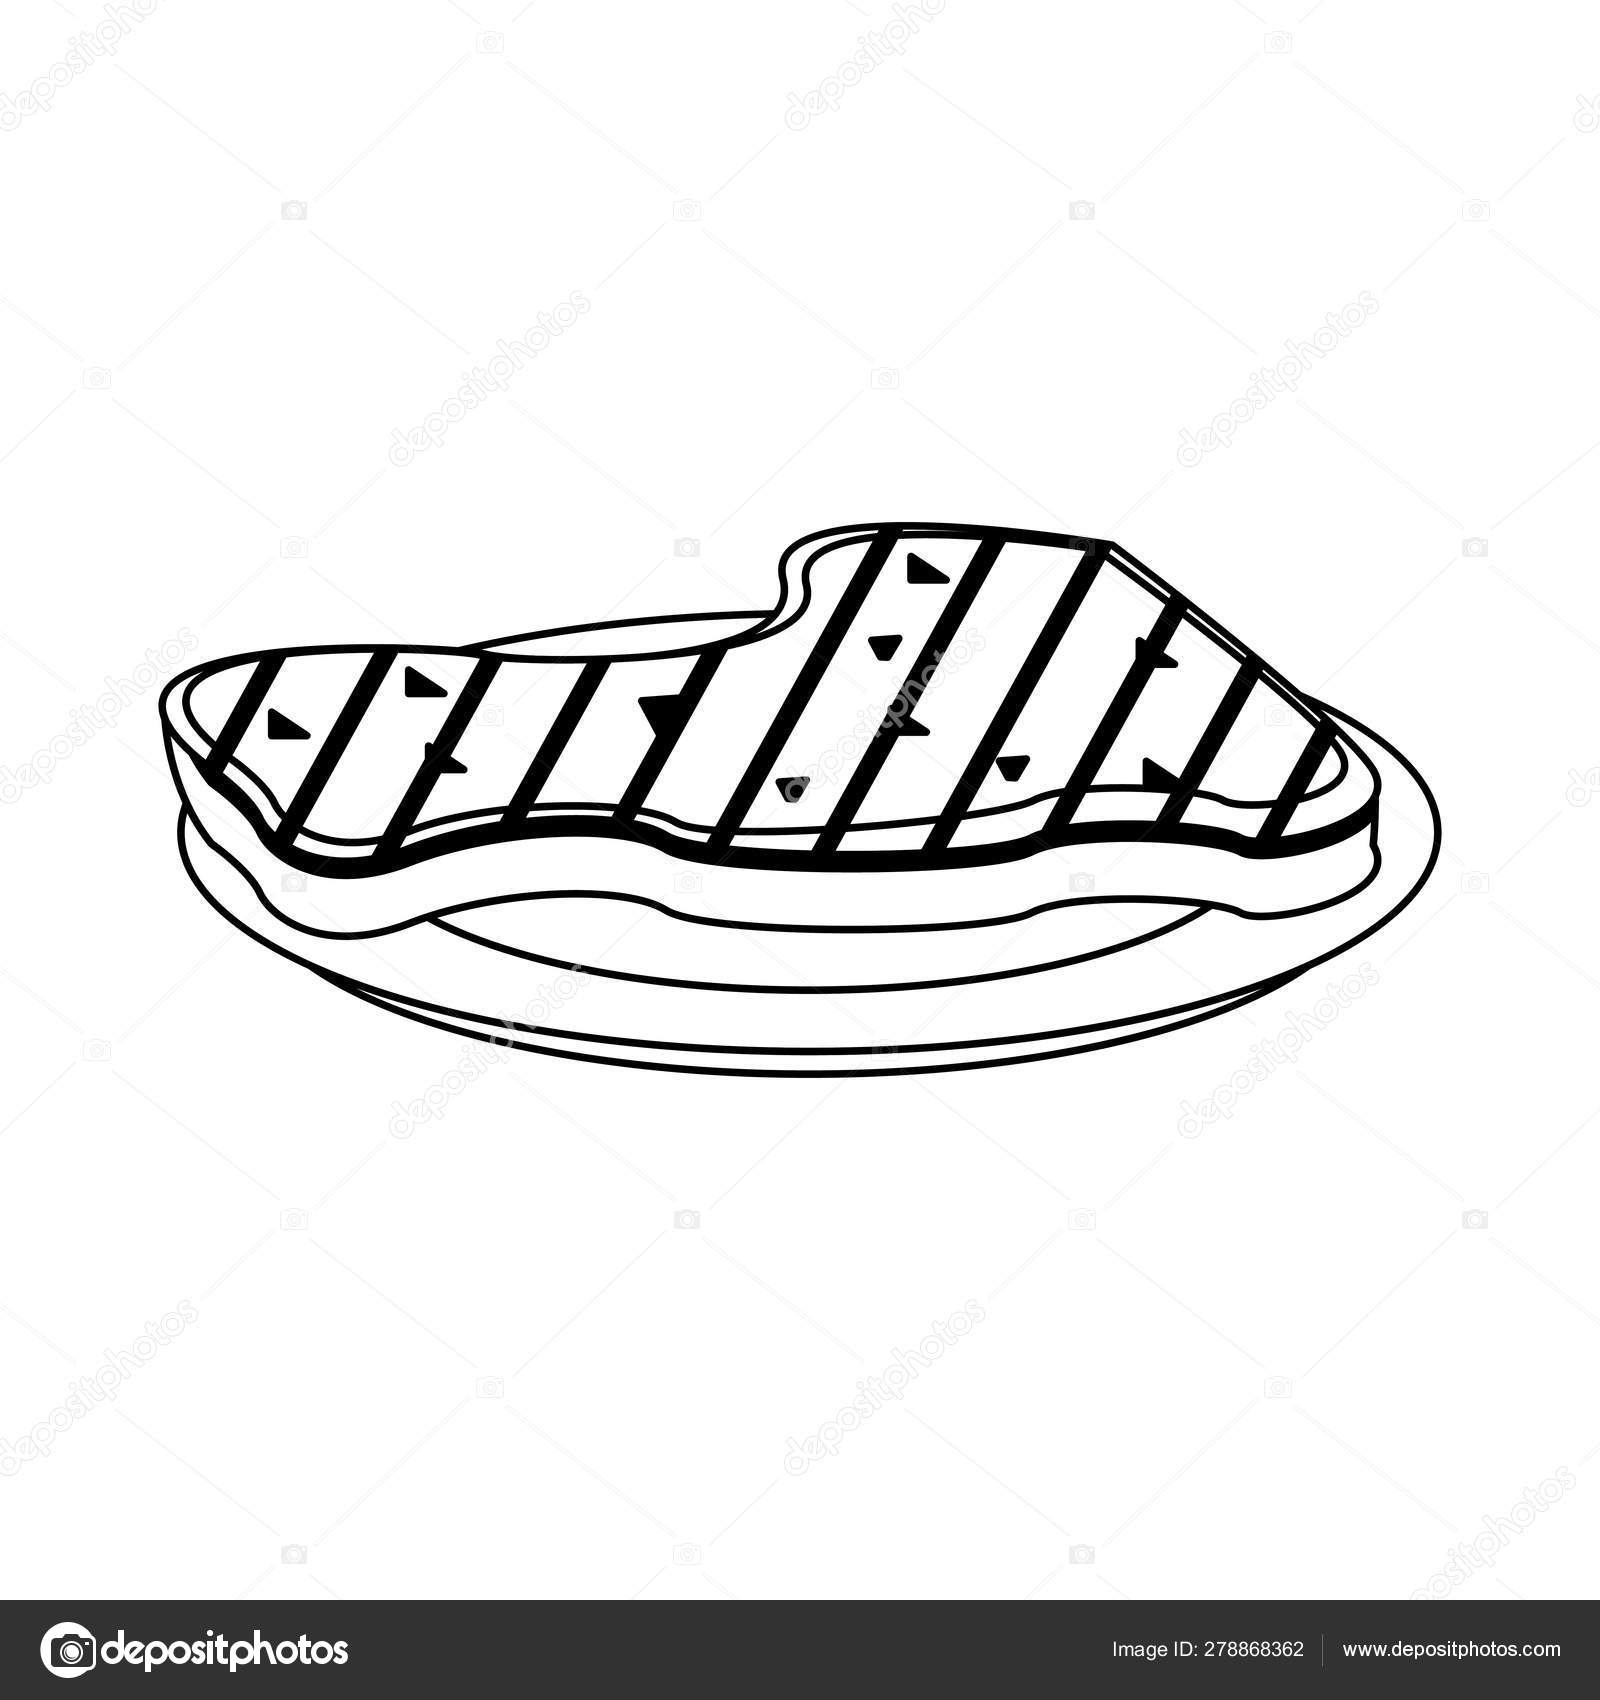 beef steak on dish cartoon in black and white stock vector c jemastock 278868362 beef steak on dish cartoon in black and white stock vector c jemastock 278868362